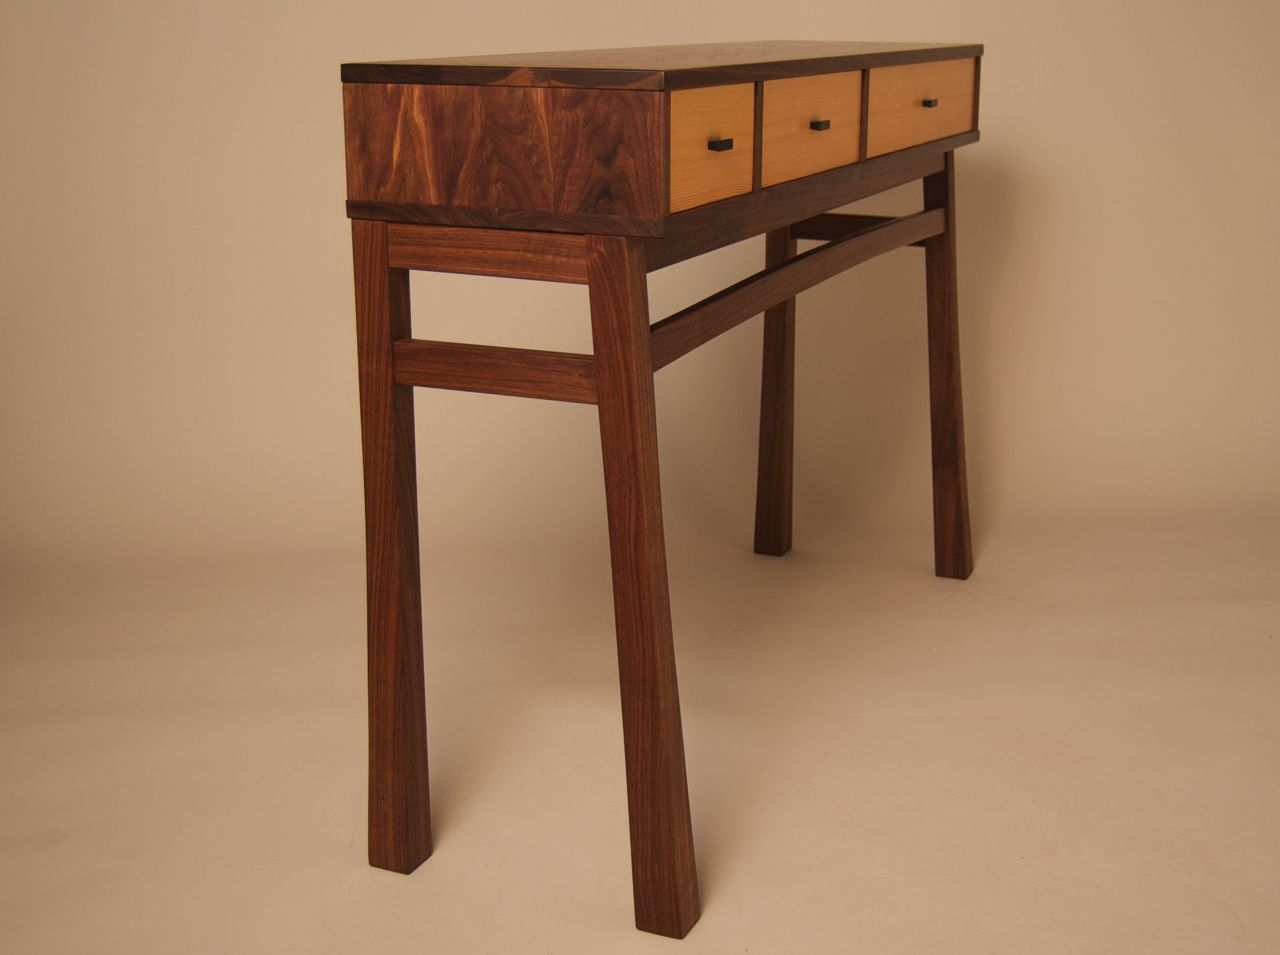 Douglas Fir Kitchen Cabinets Custom Made Console Table In Walnut Douglas Fir By Joseph Murphy